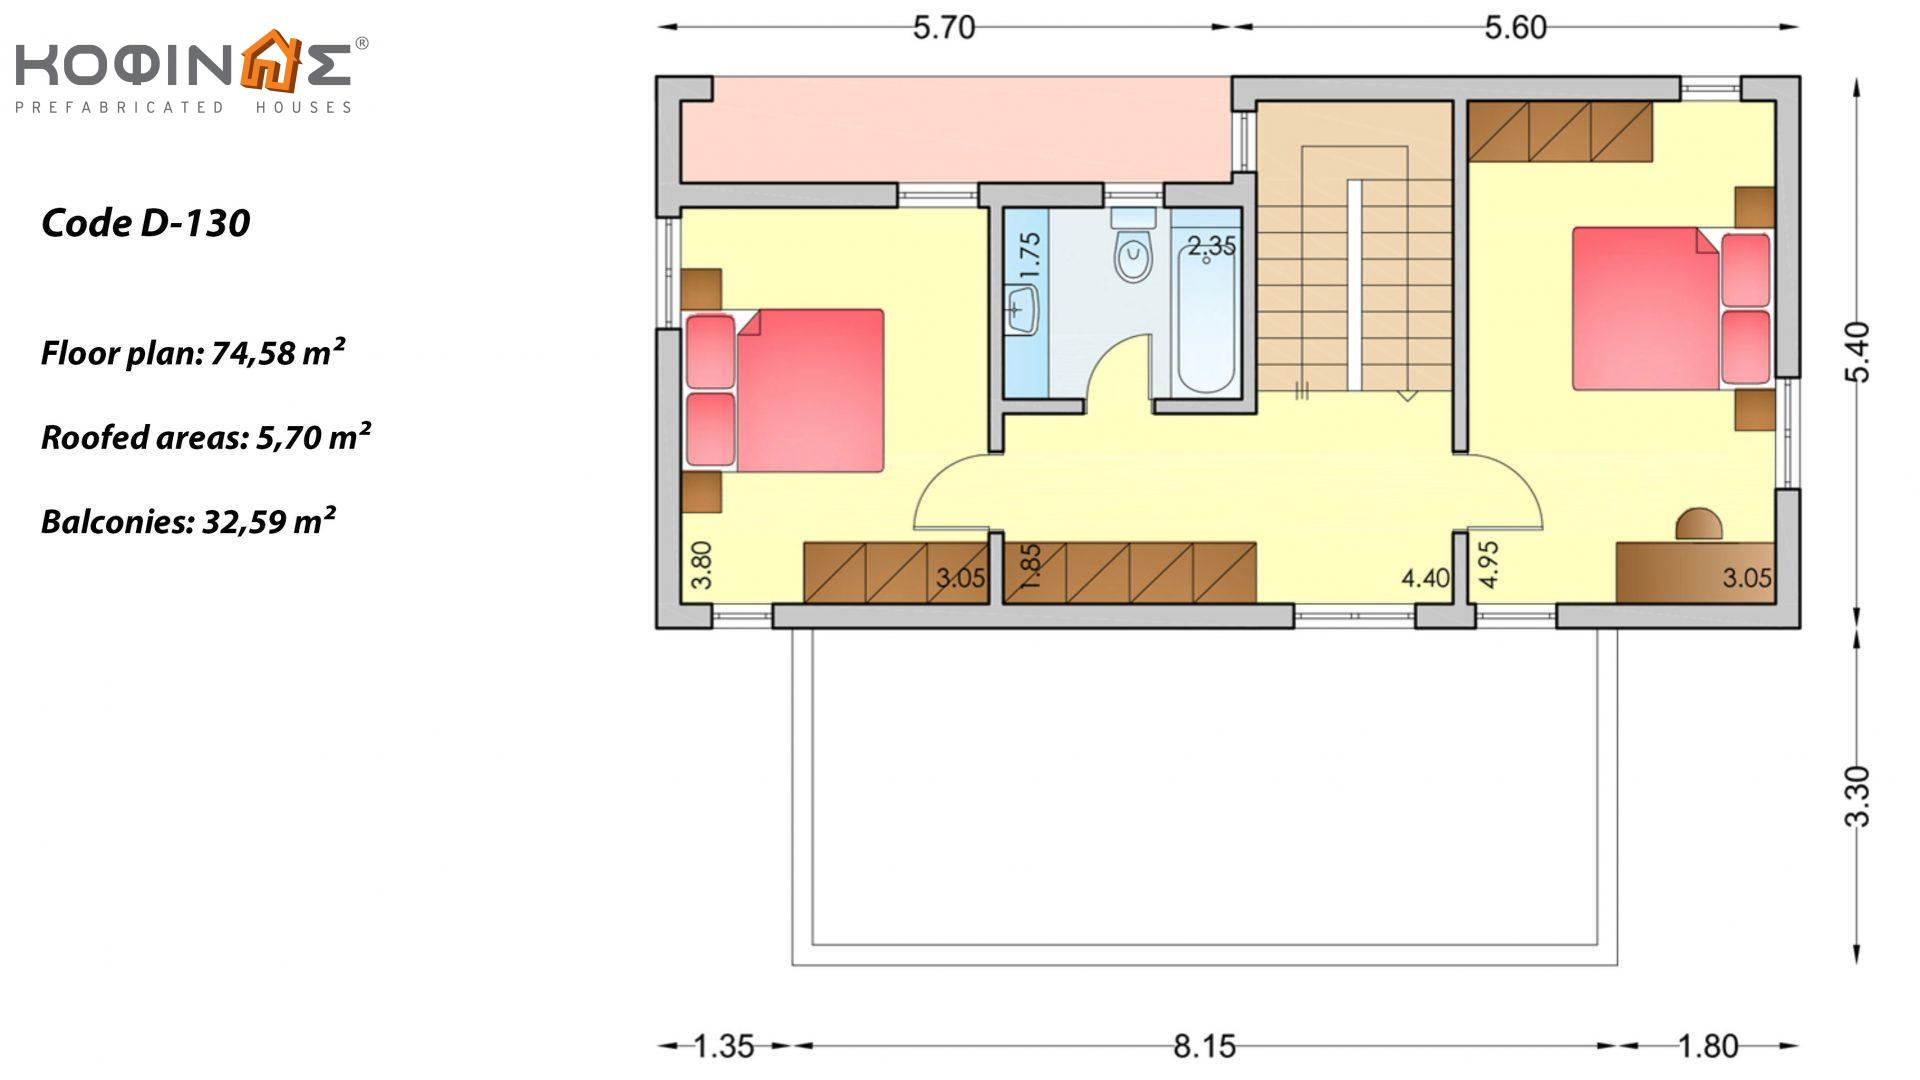 2-story house D-130, total surface of 130,2 m²,roofed areas 16.81 m²,balconies 32.59 m²